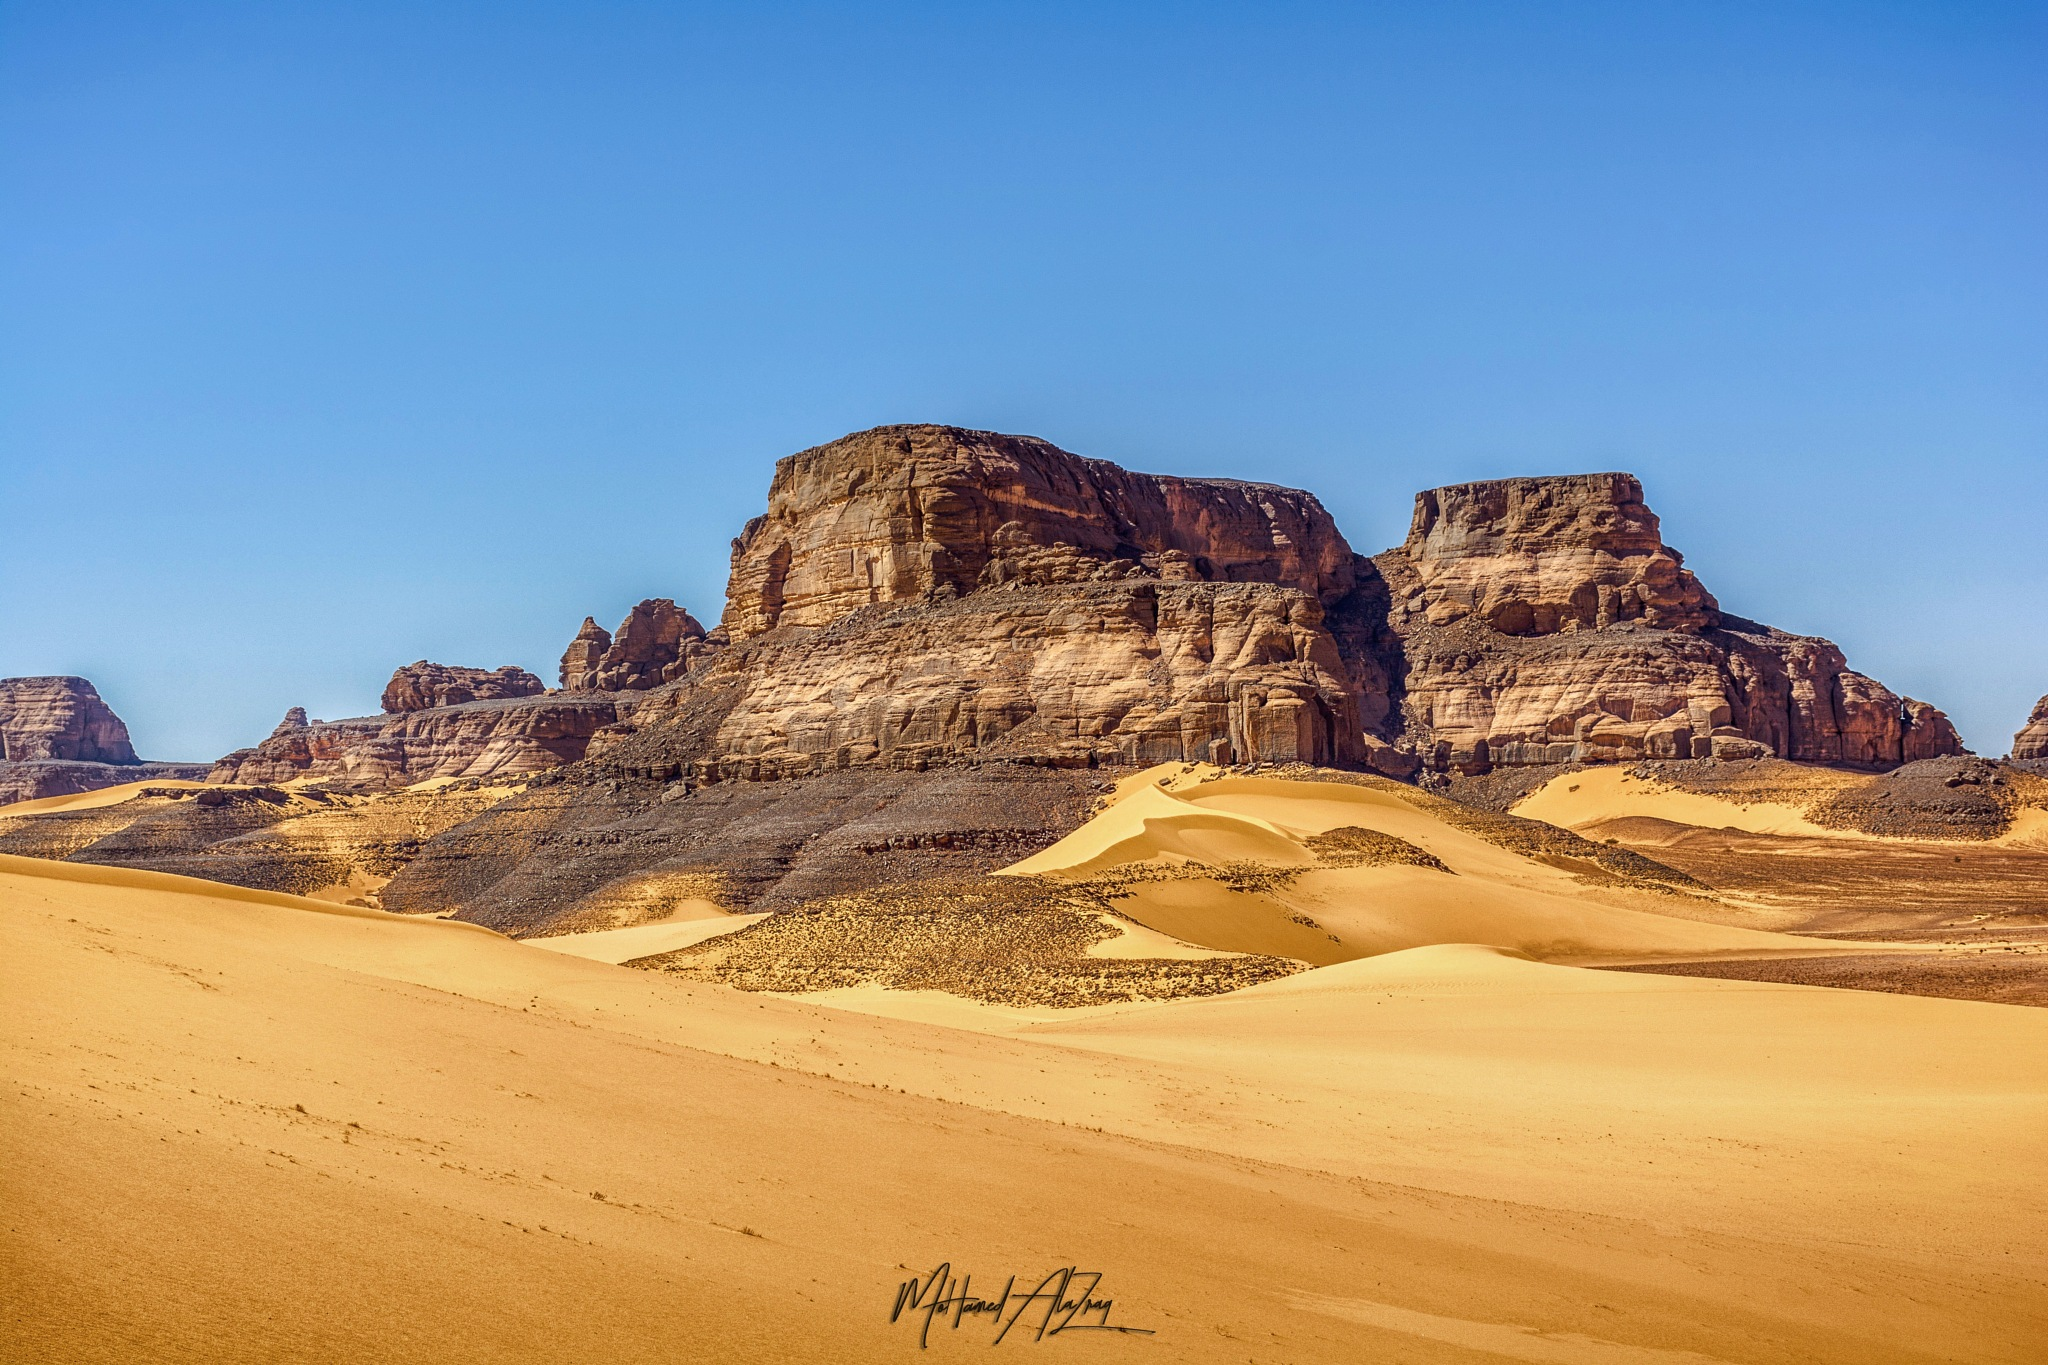 Acacus Mountains (mad max) by Mohamed alazrak